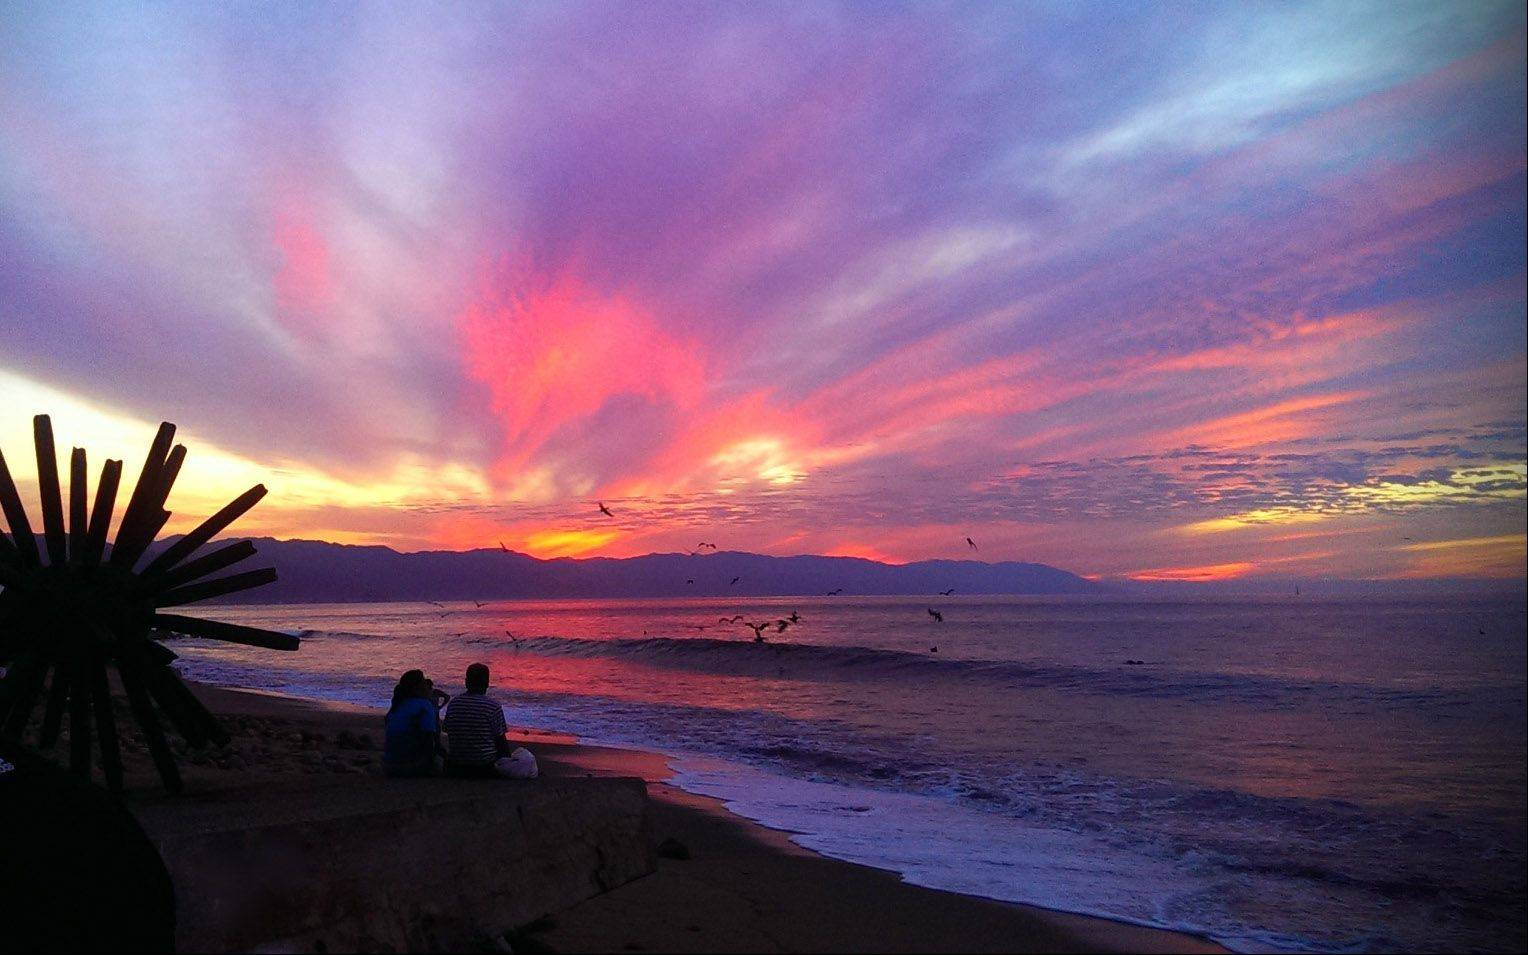 An incredible sunset is captured along the boardwalk on January 15th in Puerto Vallarta.